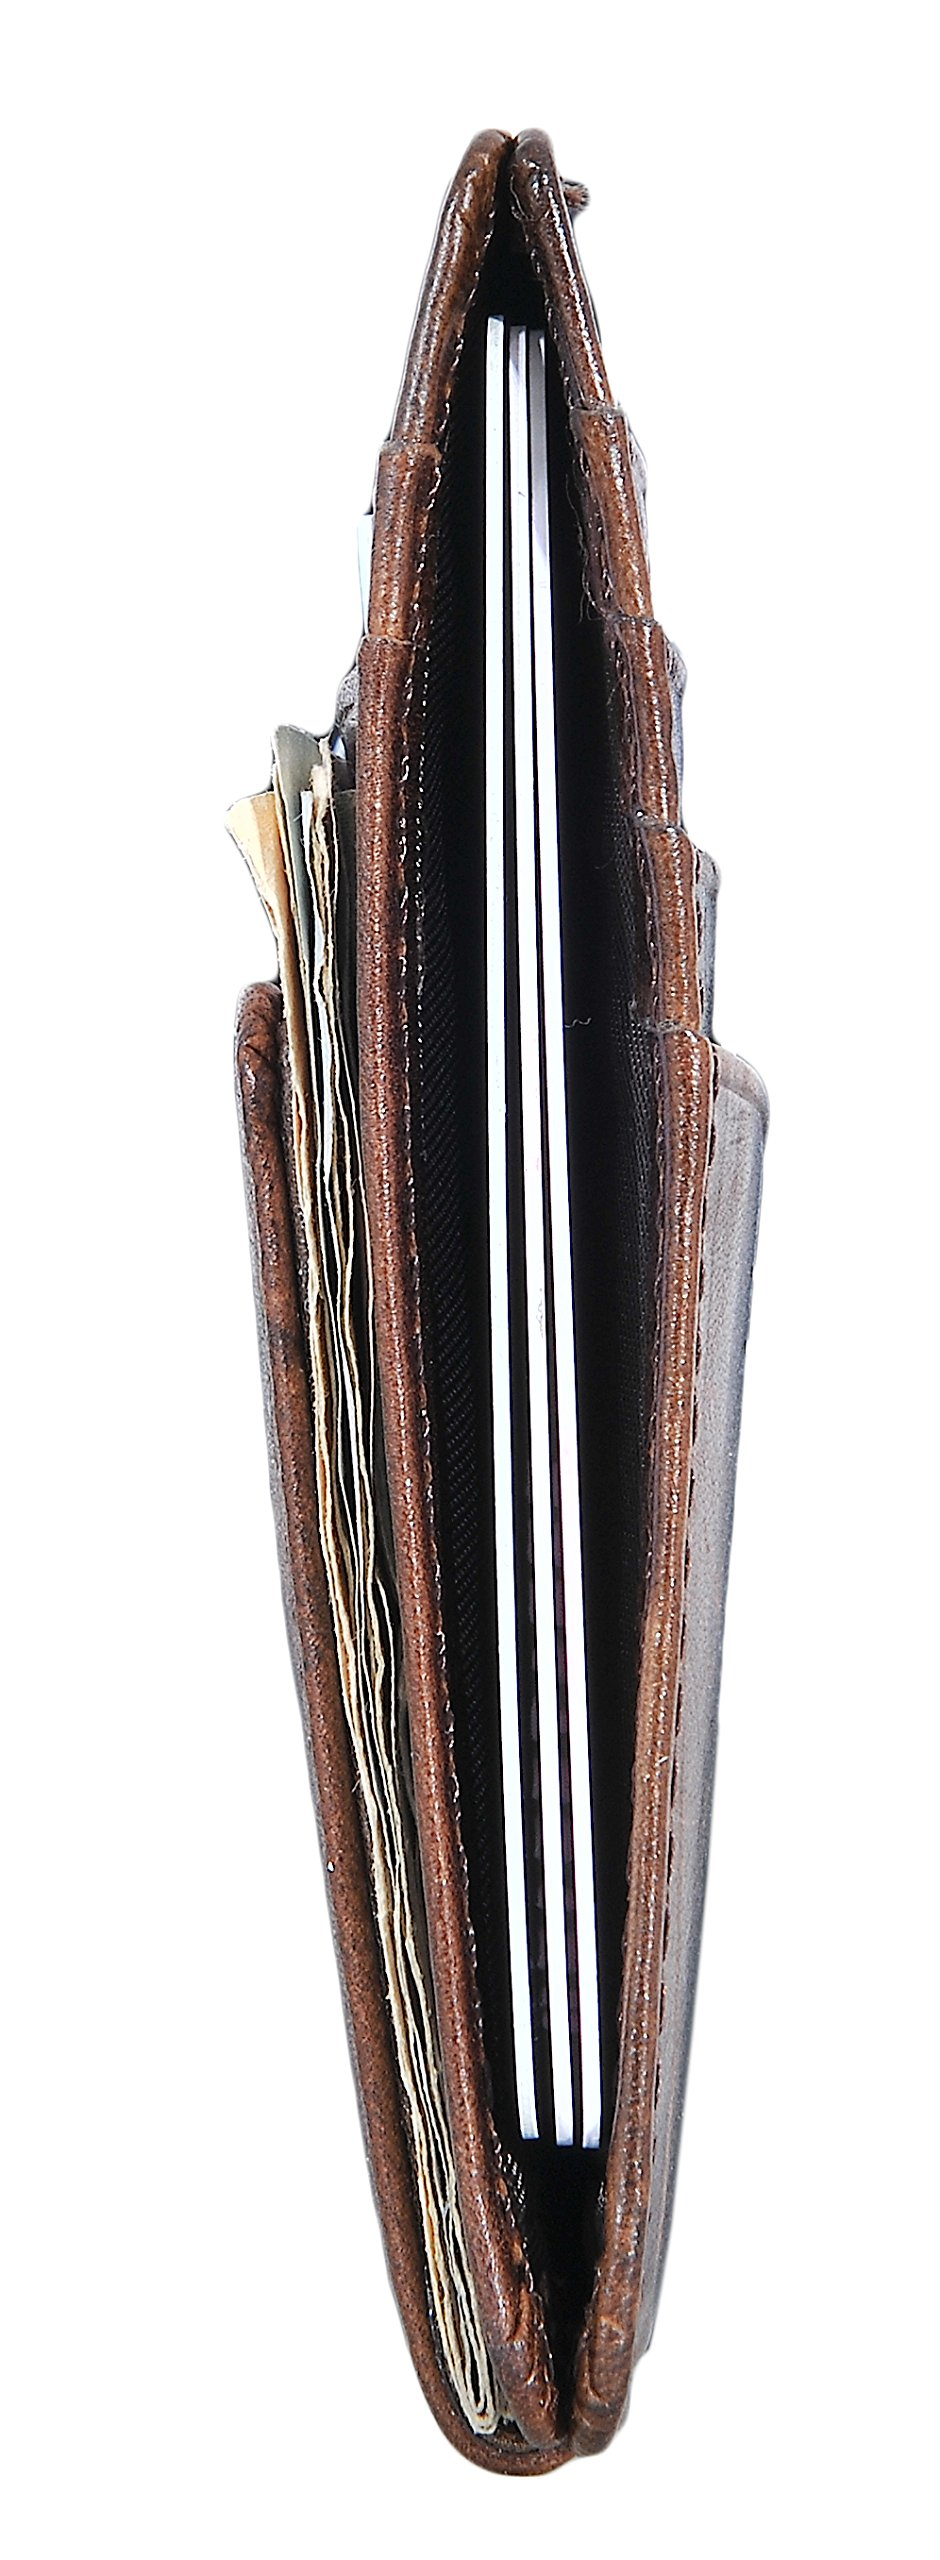 Mens Money Clip Wallet RFID Slim Wallet Genuine Leather Thin Front Pocket Wallet (Coffee (Oil Wax Leather)) by Yuhan Pretty (Image #4)